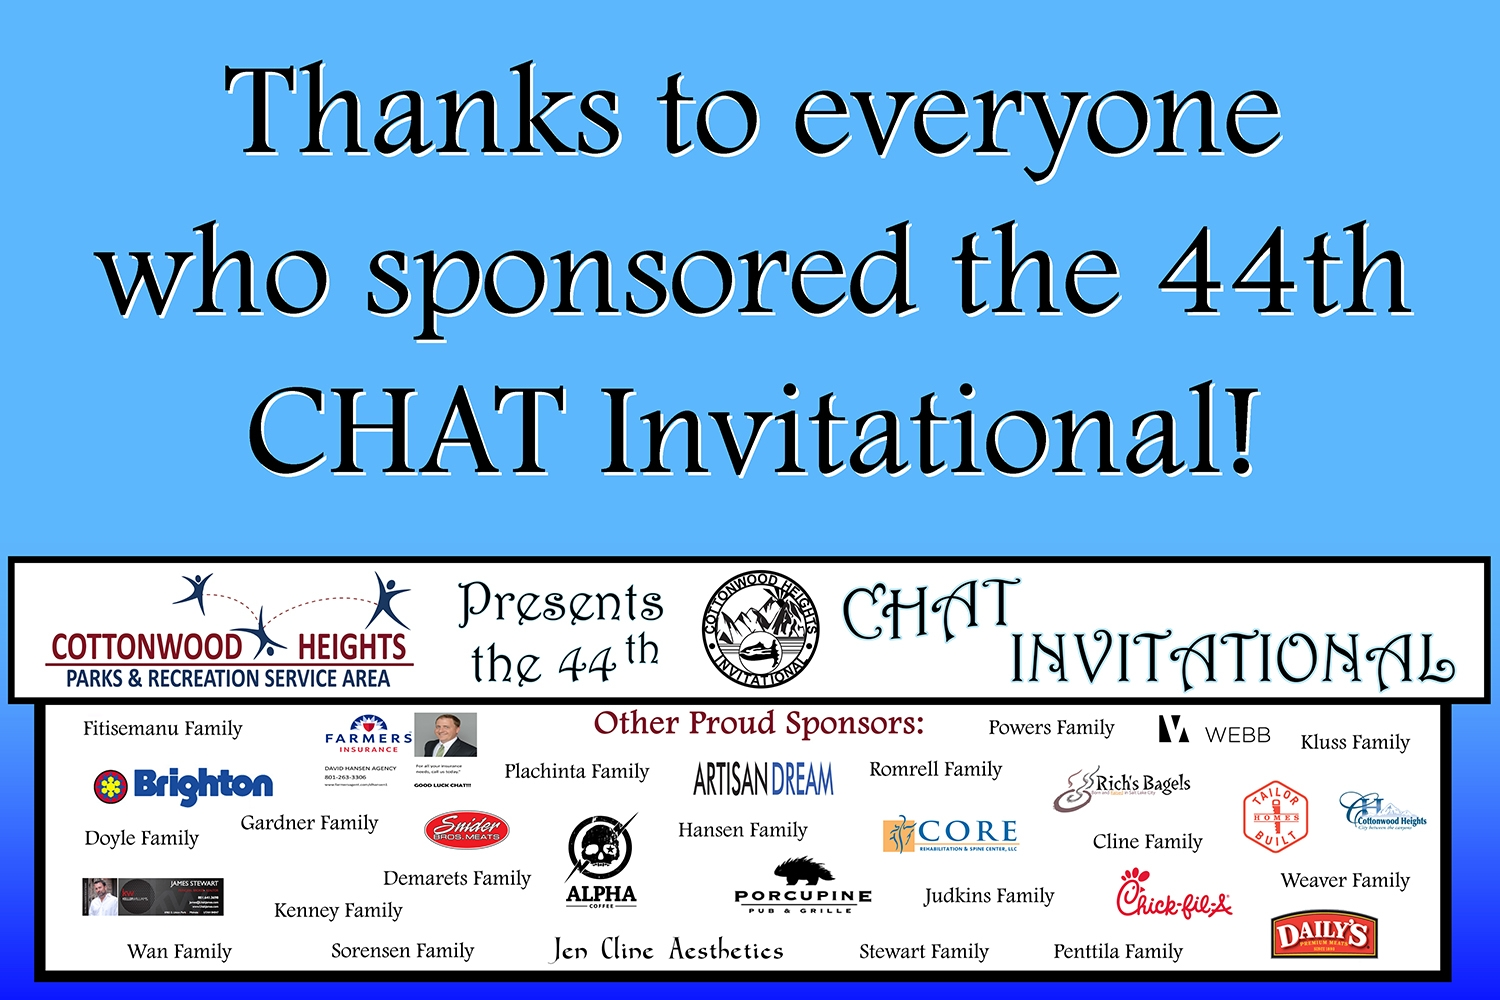 The 44th CHAT Invitational Sponsors